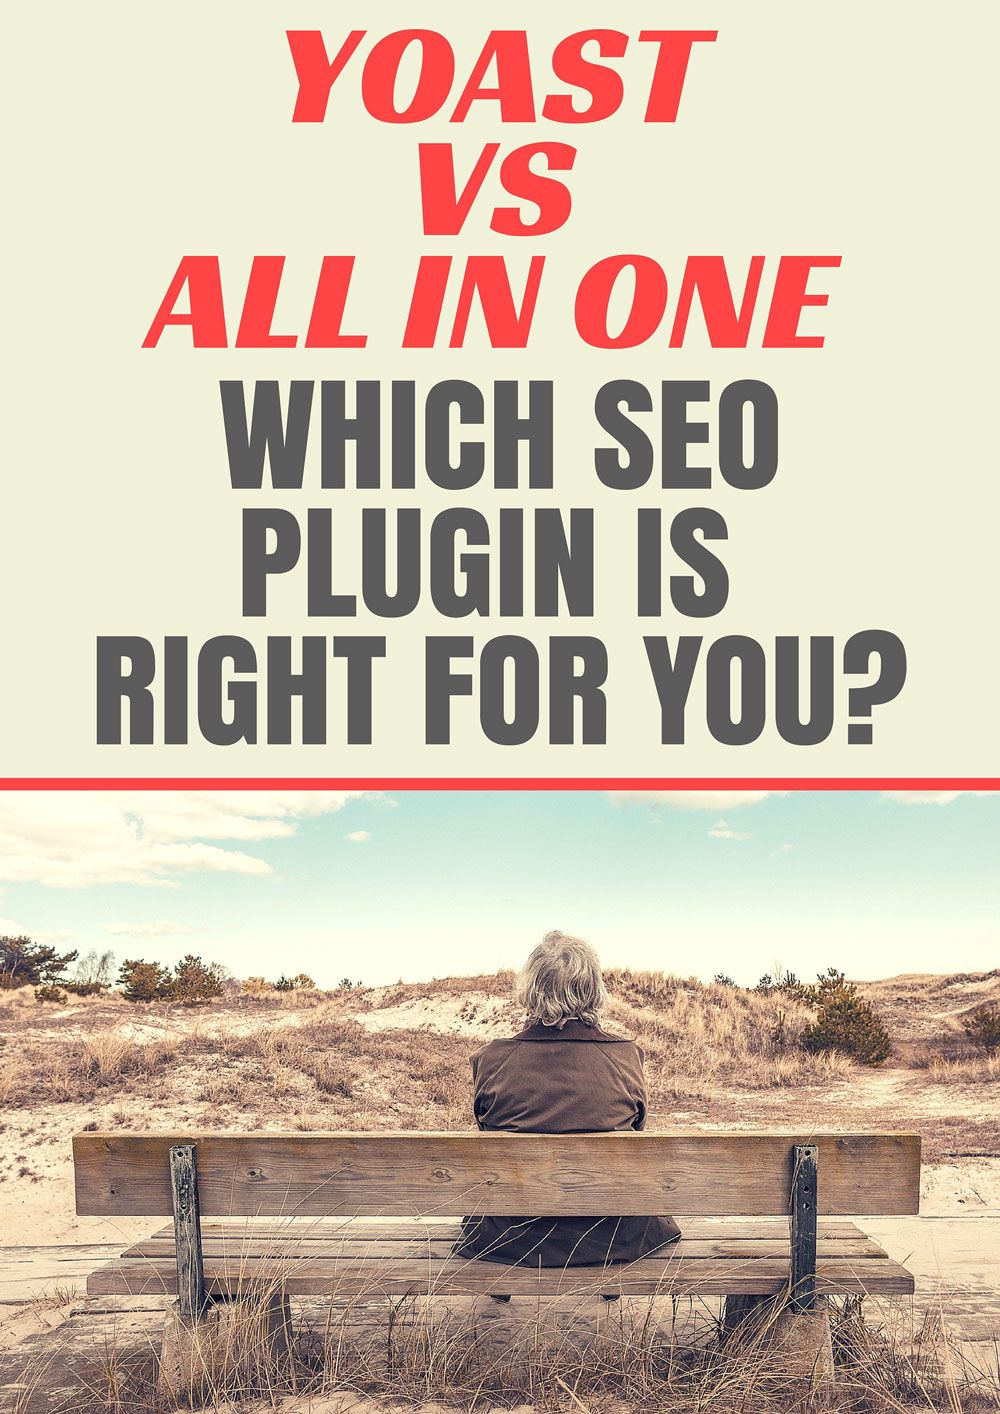 Yoast Vs All In One Seo Pack Which Is Best For You With Images